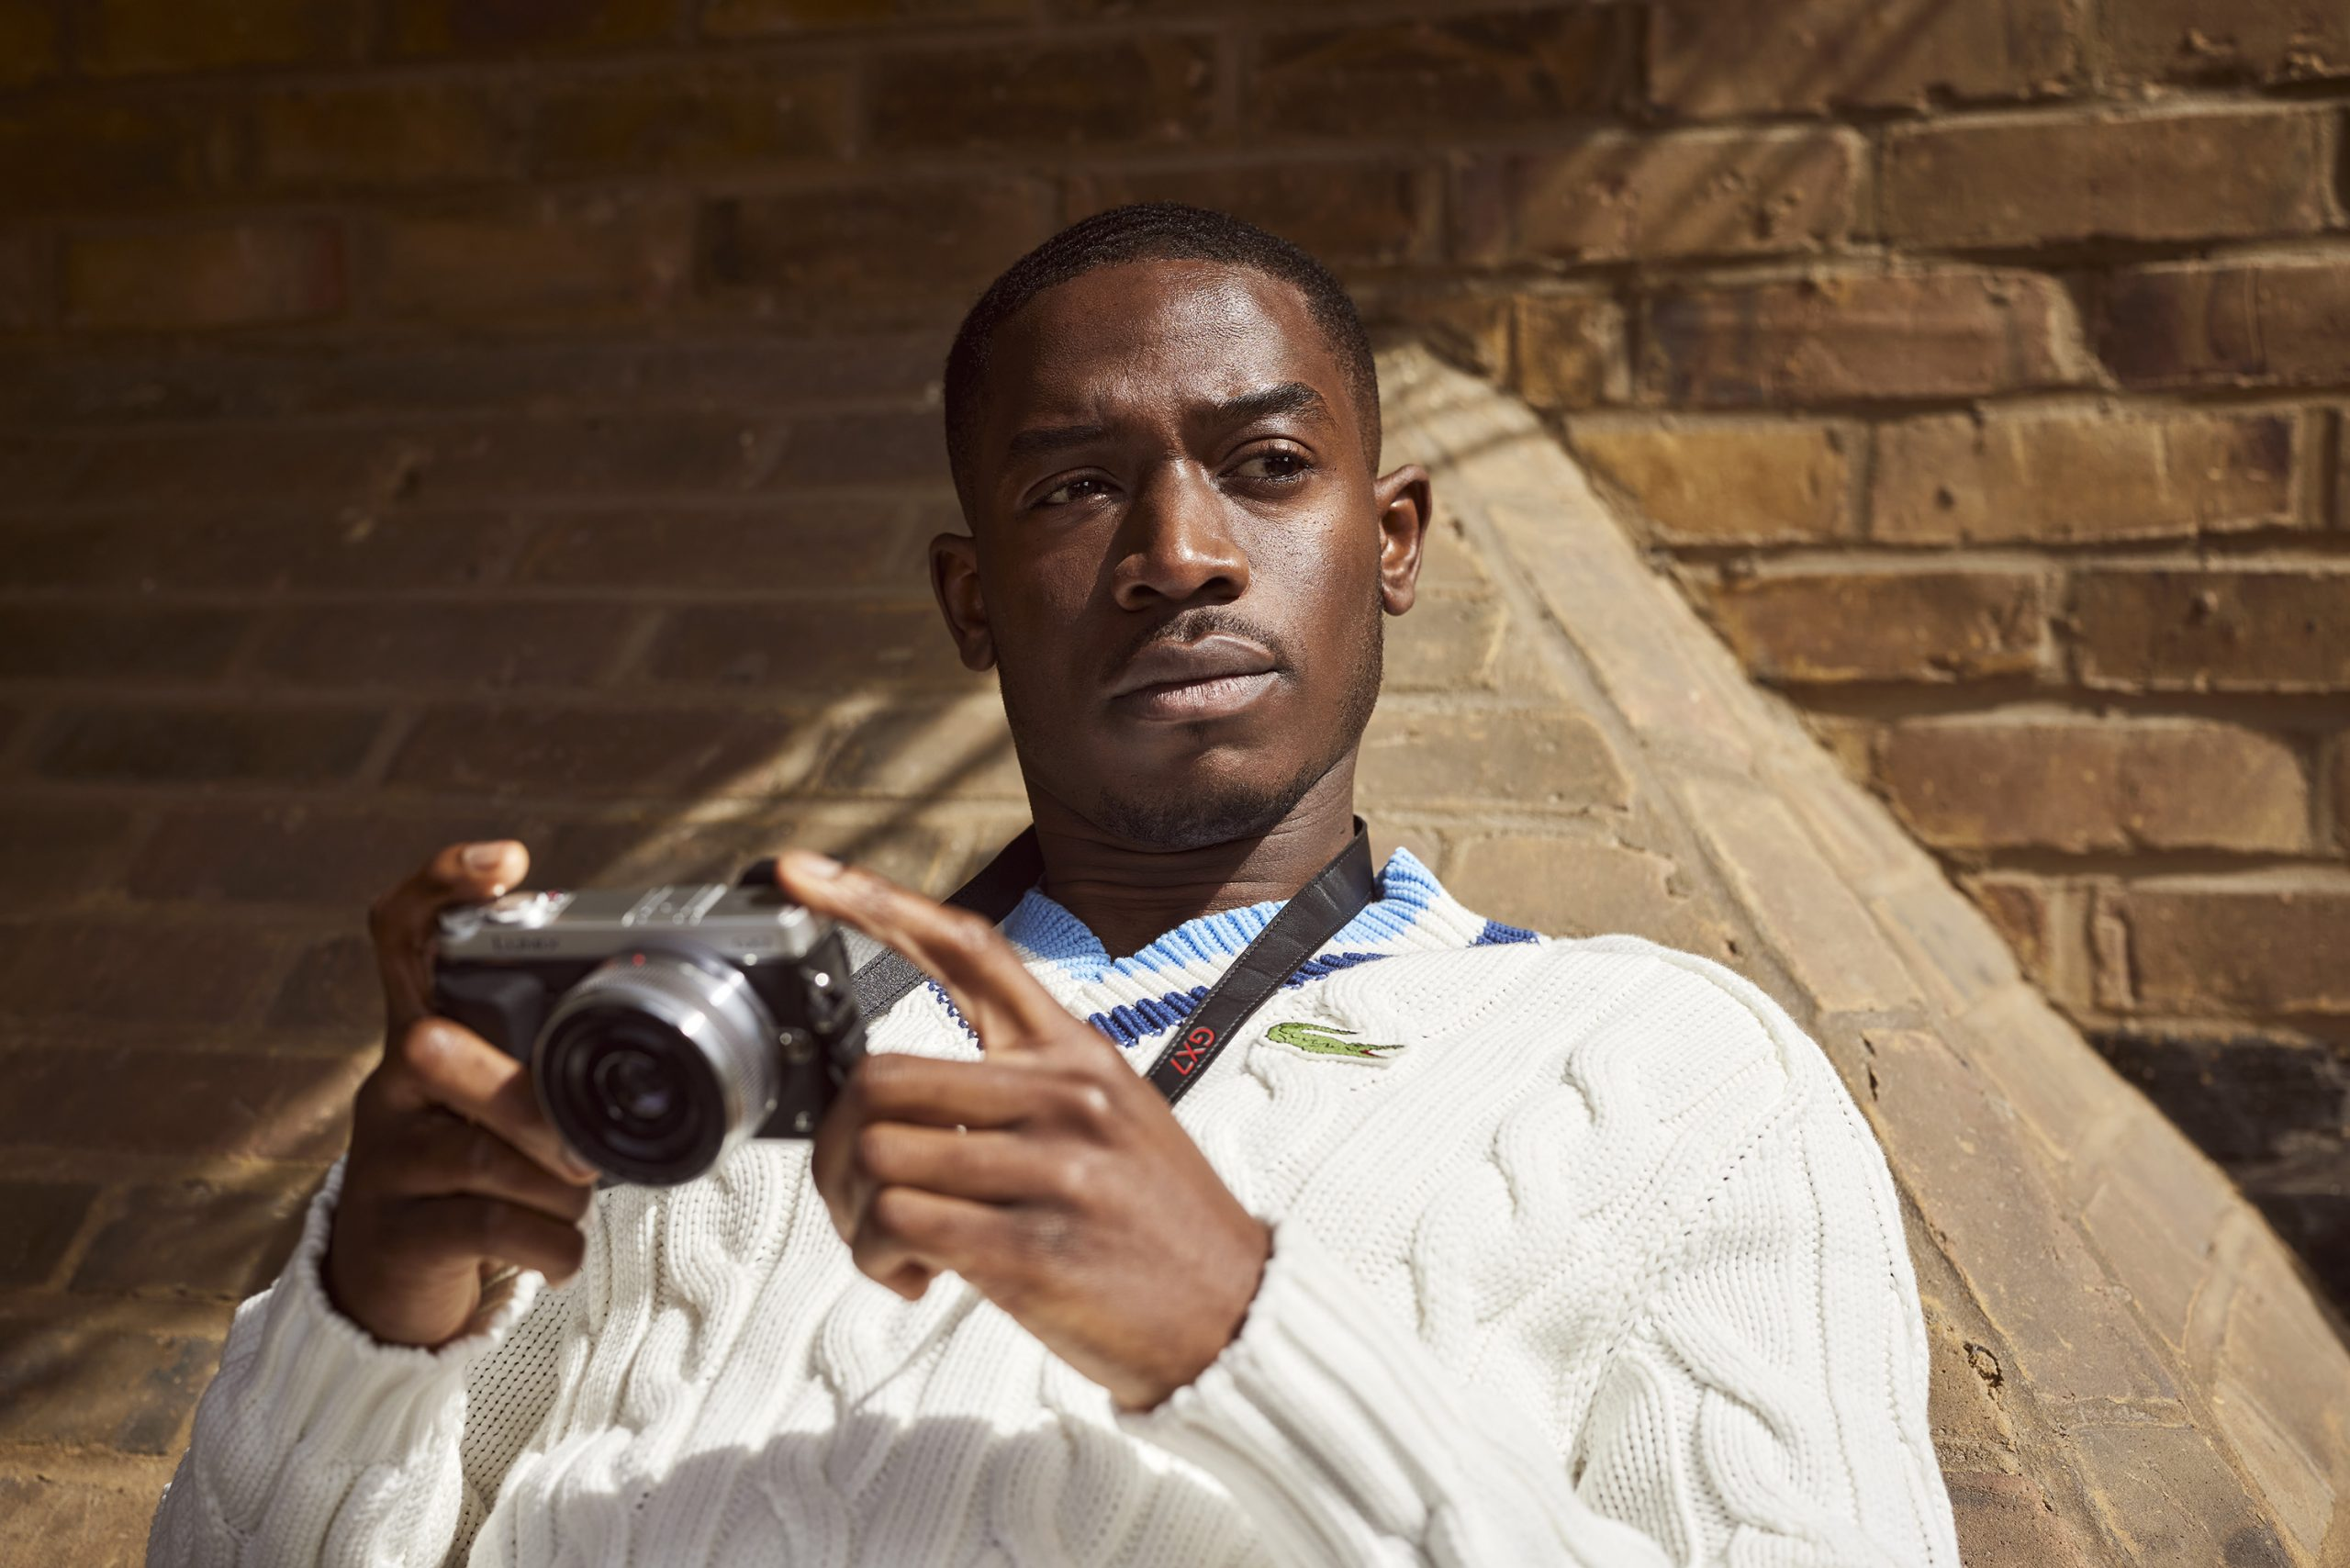 Damson Idris holding a camera while leaning on a brick wall